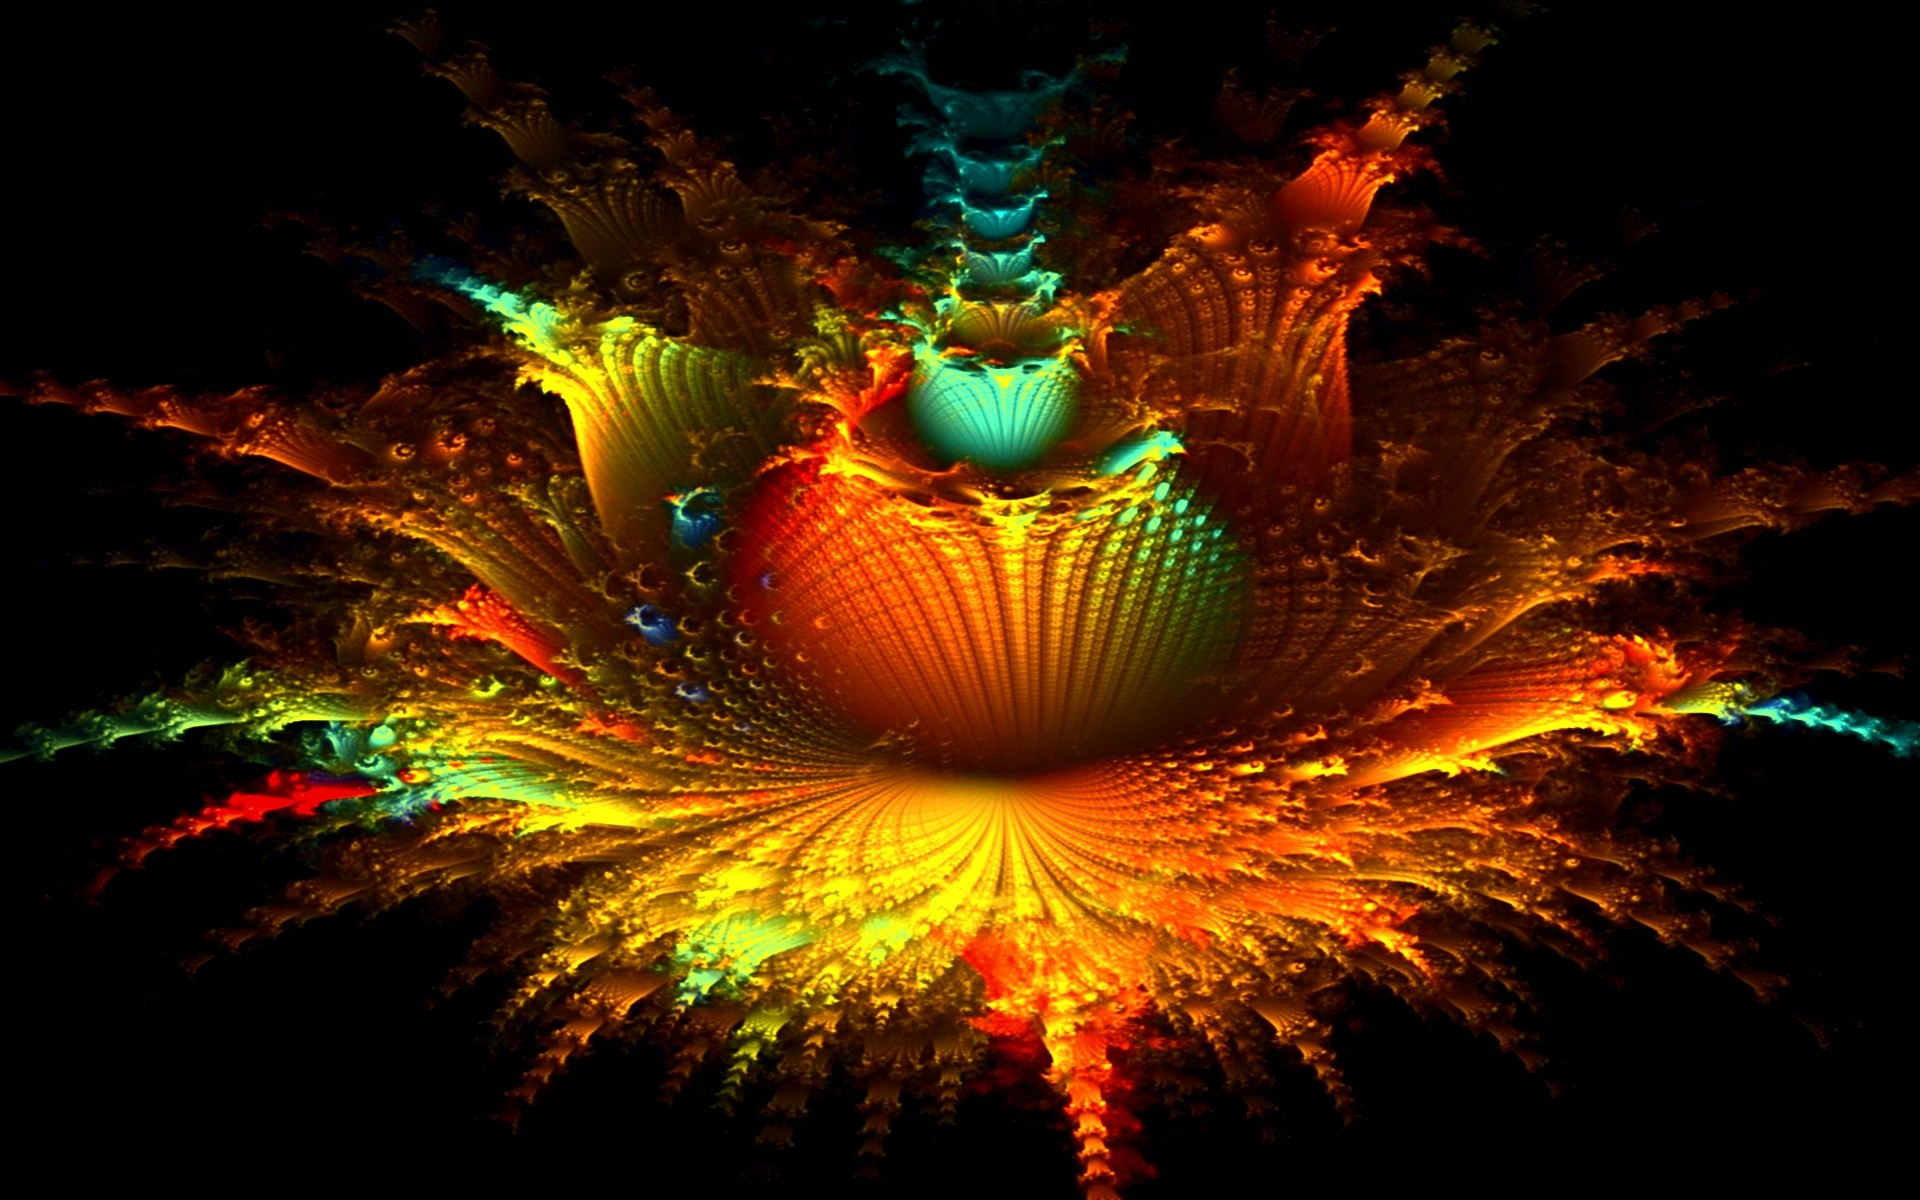 Abstract Hd Wallpapers   Free Desk Wallpapers – Part 2